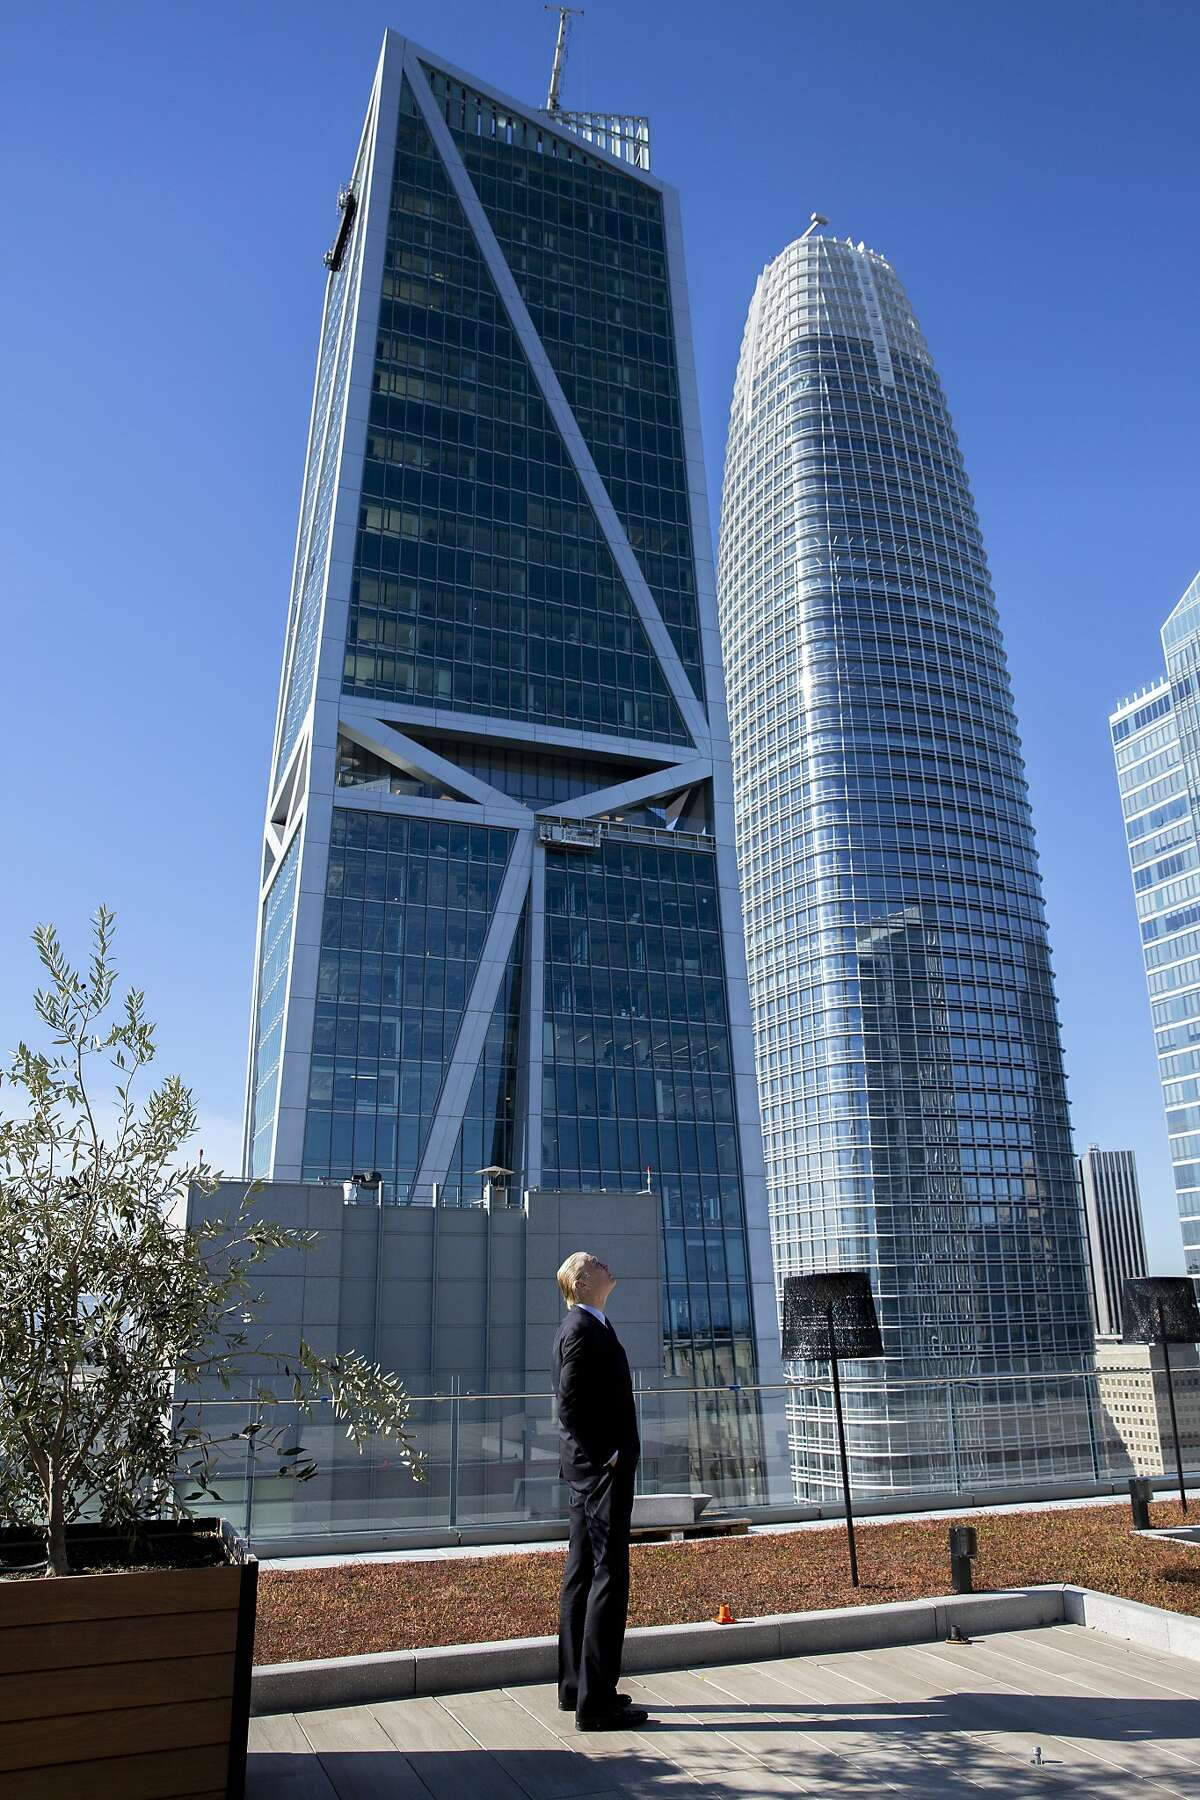 Jim Goettsch at Park Tower at Transbay located at 250 Howard Street on Thursday, Jan. 24, 2019, in San Francisco, Calif. Goettsch is the building's architect. 181 Fremont and Salesforce Tower are seen in the background.